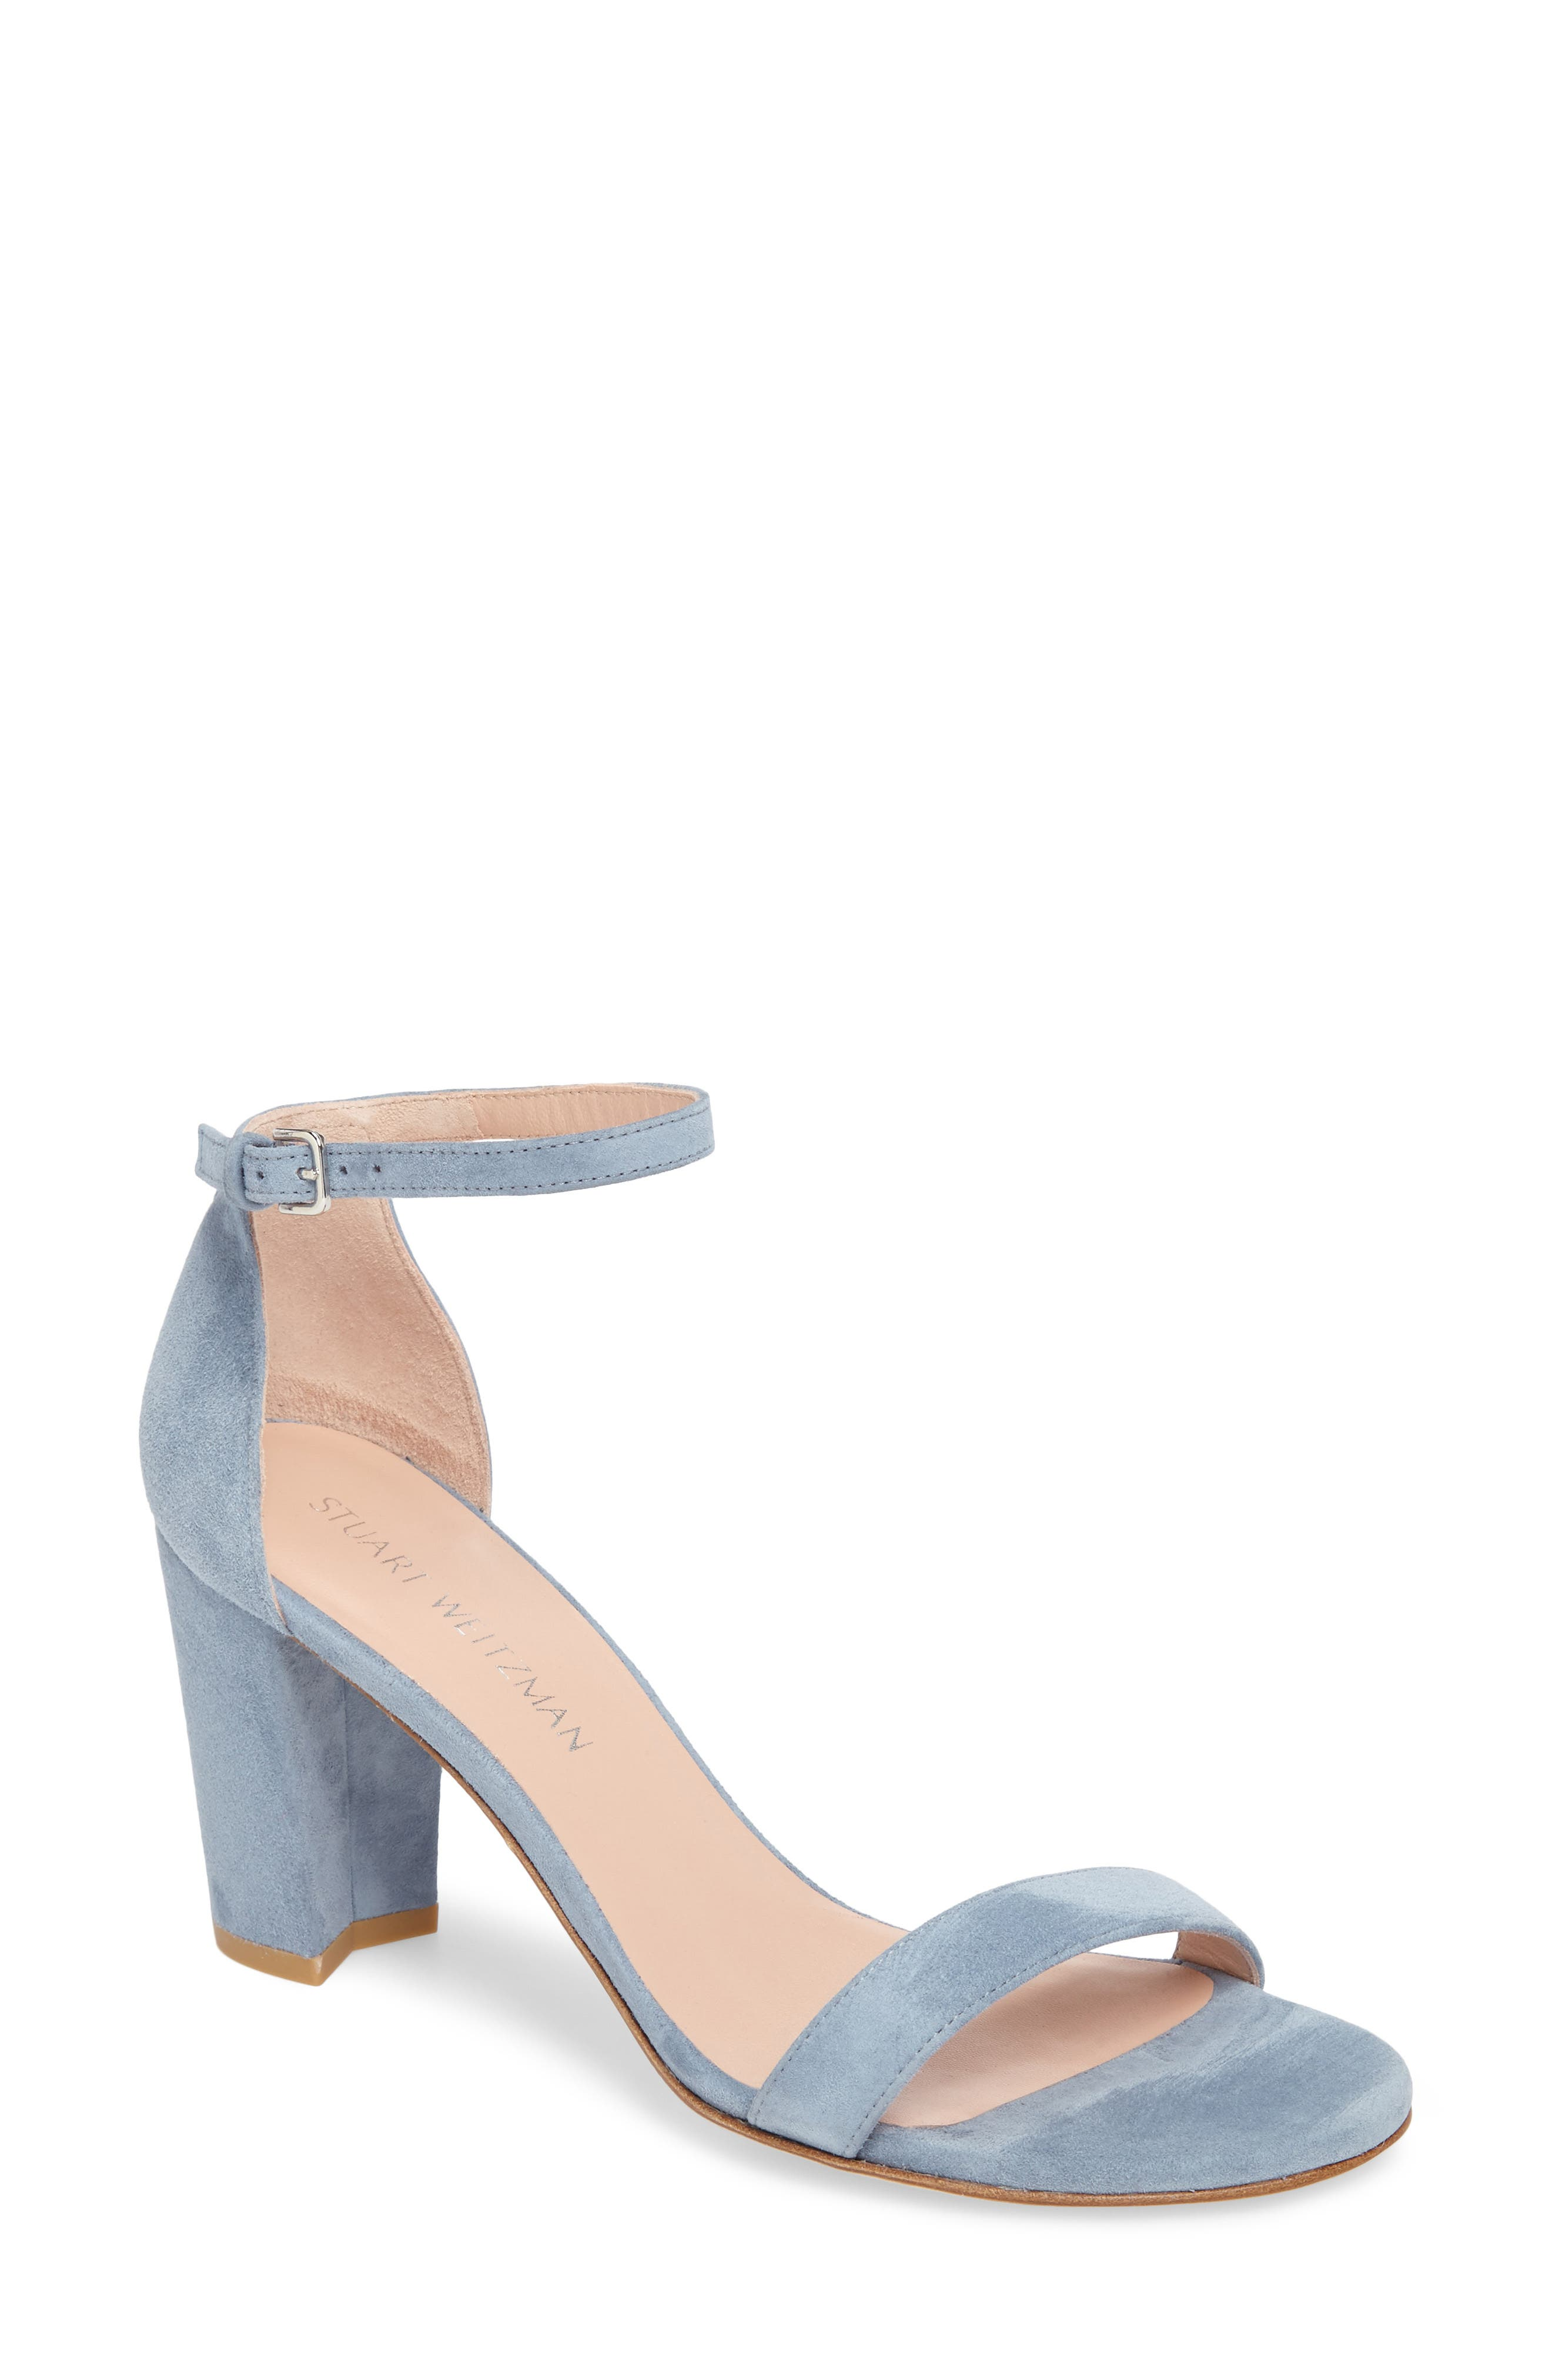 NearlyNude Ankle Strap Sandal,                             Main thumbnail 6, color,